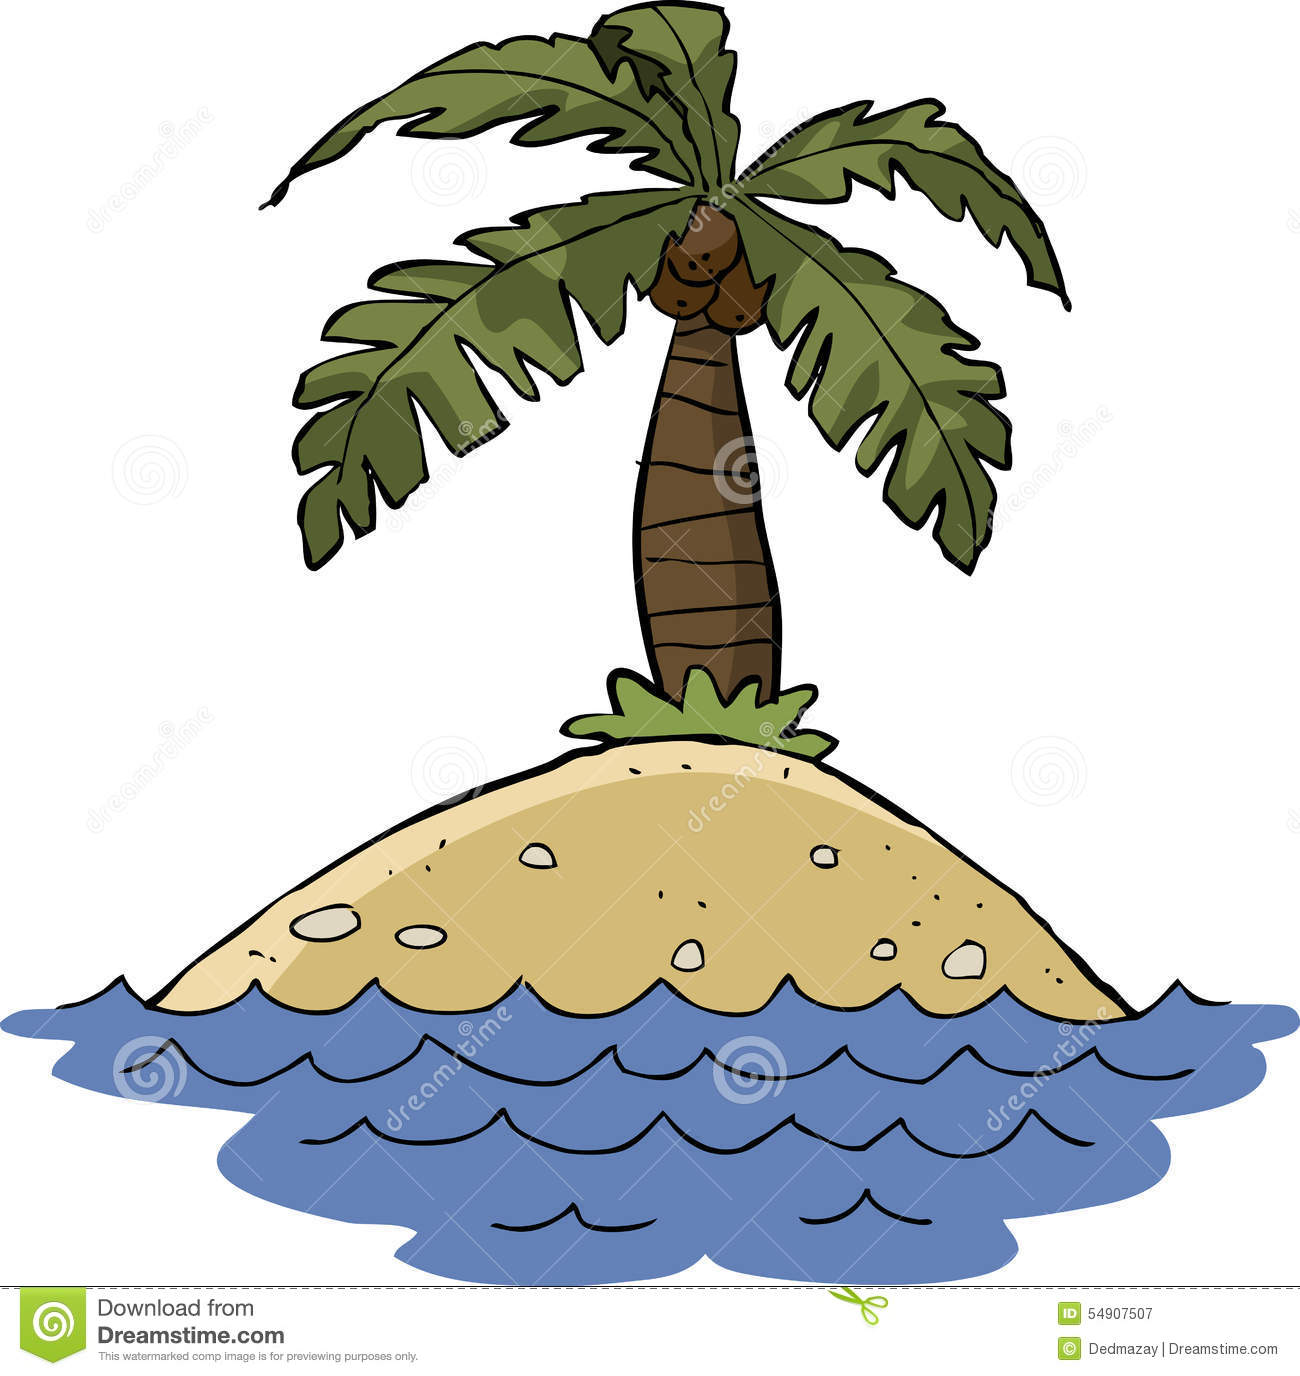 Island stock vector. Image of design, sand, south, drawing ...